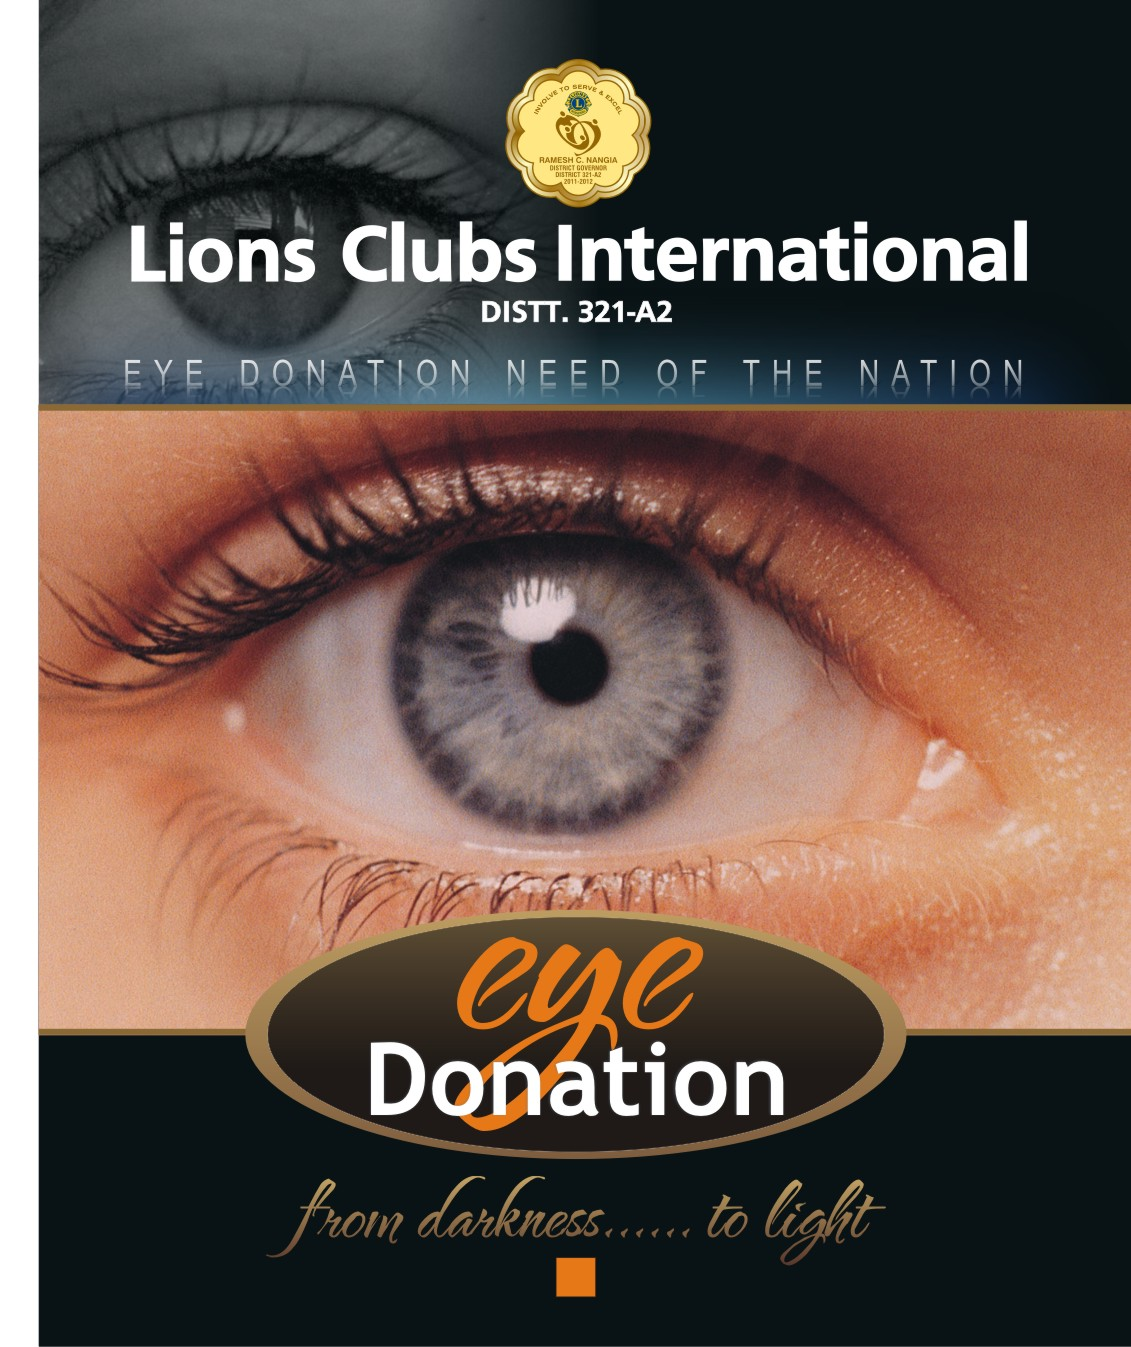 Lions Clubs International.  Eye Donation: Need of the Nation.  Close-up picture of open eye.